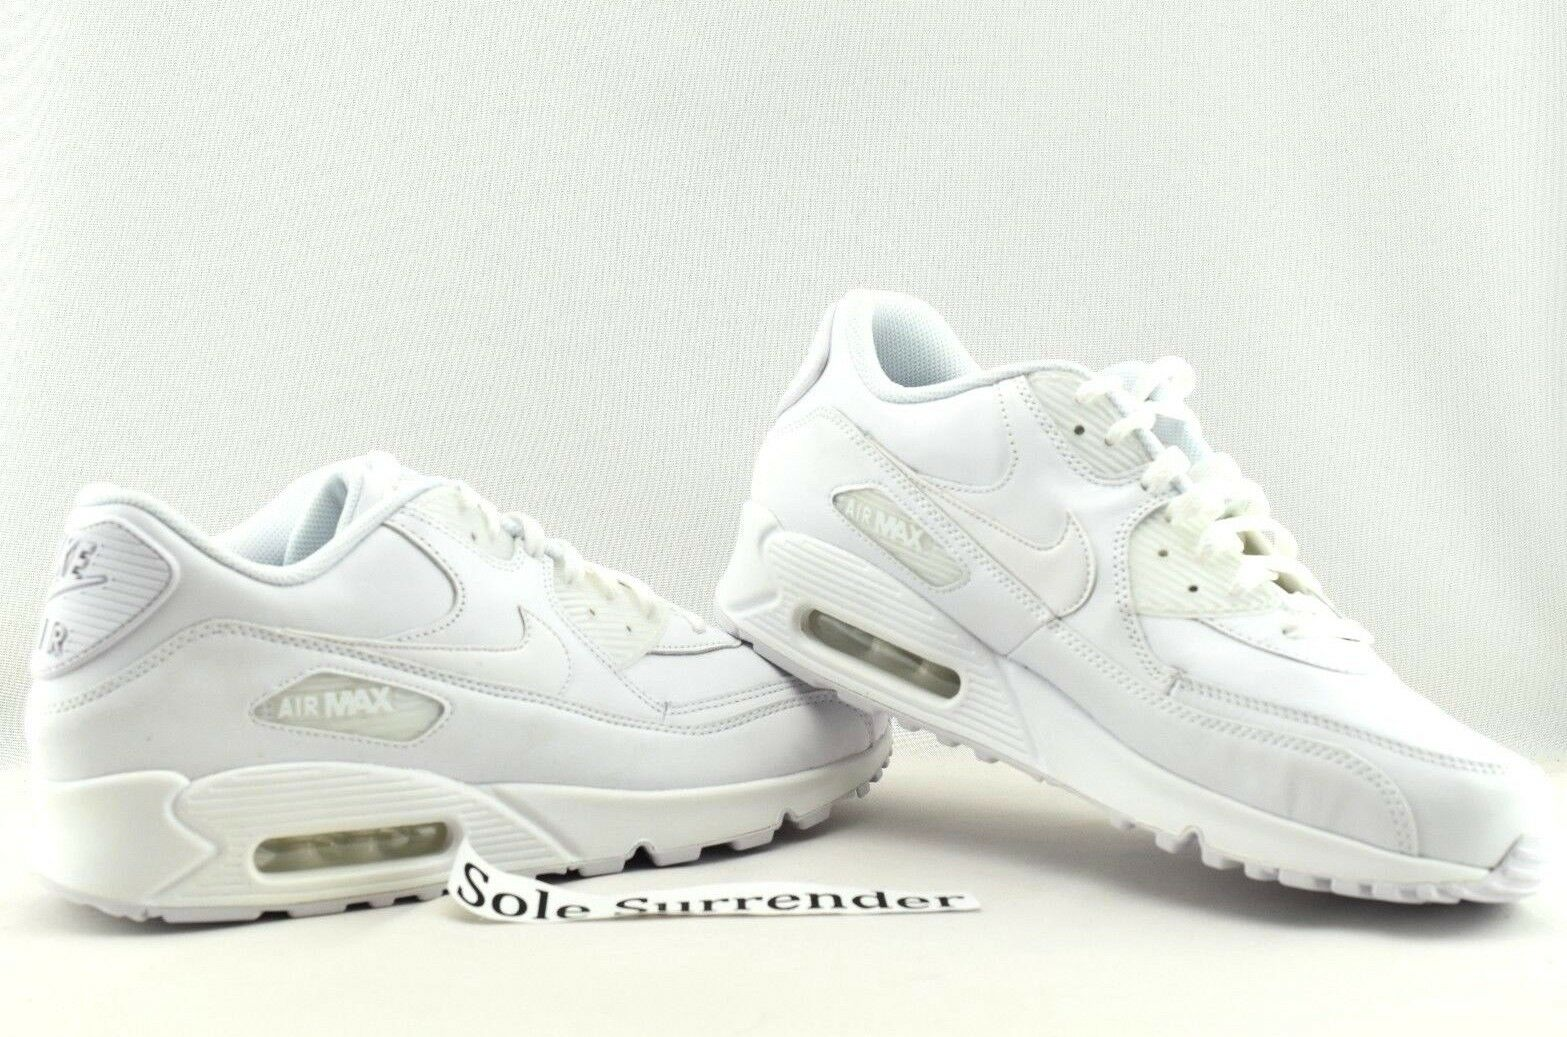 Nike Air Max 90 Leather - CHOOSE SIZE - 302519-113 Triple Whiteout Retro OG